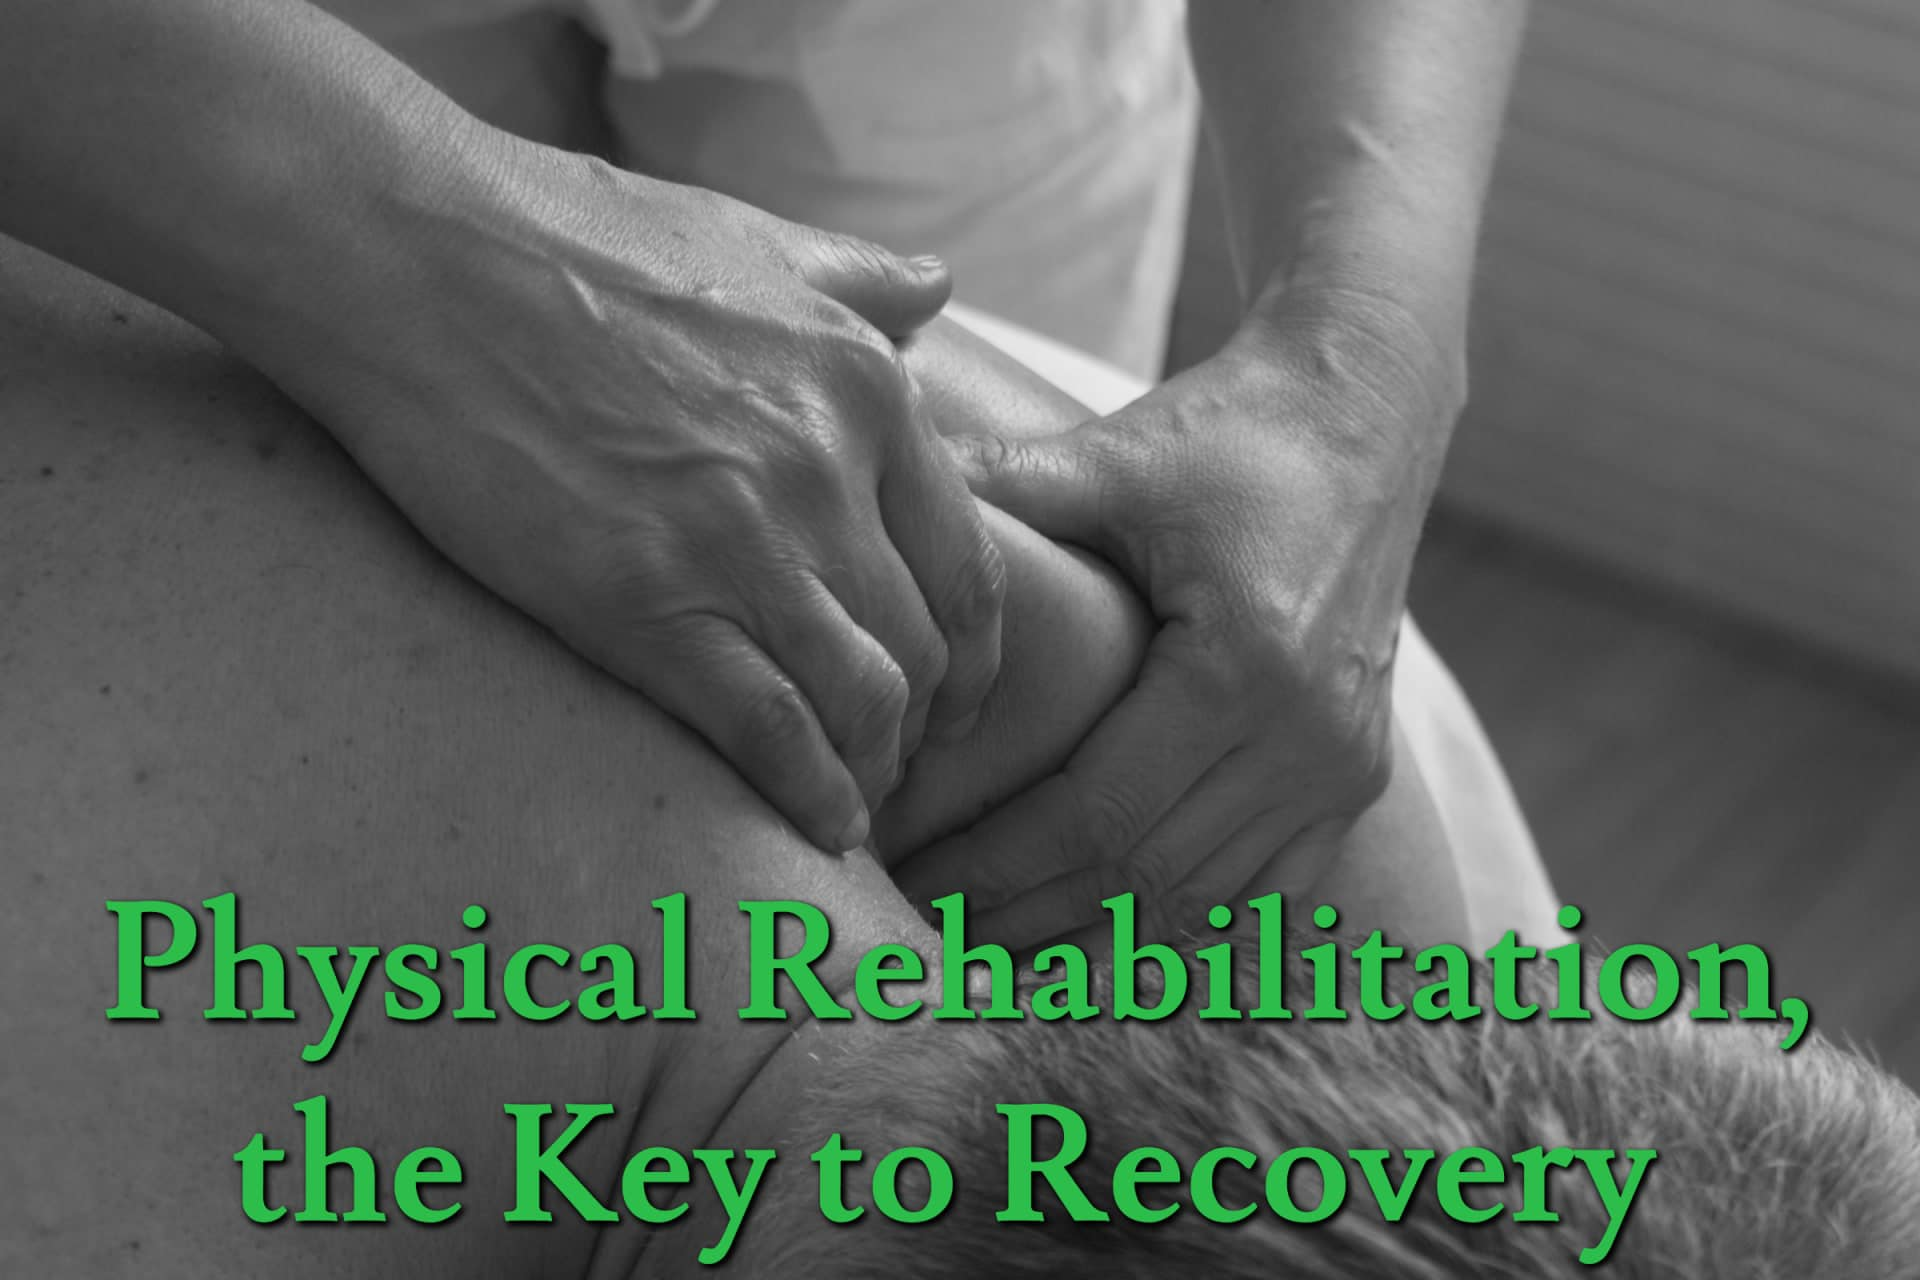 Physical Rehabilitation, the Key to Recovery